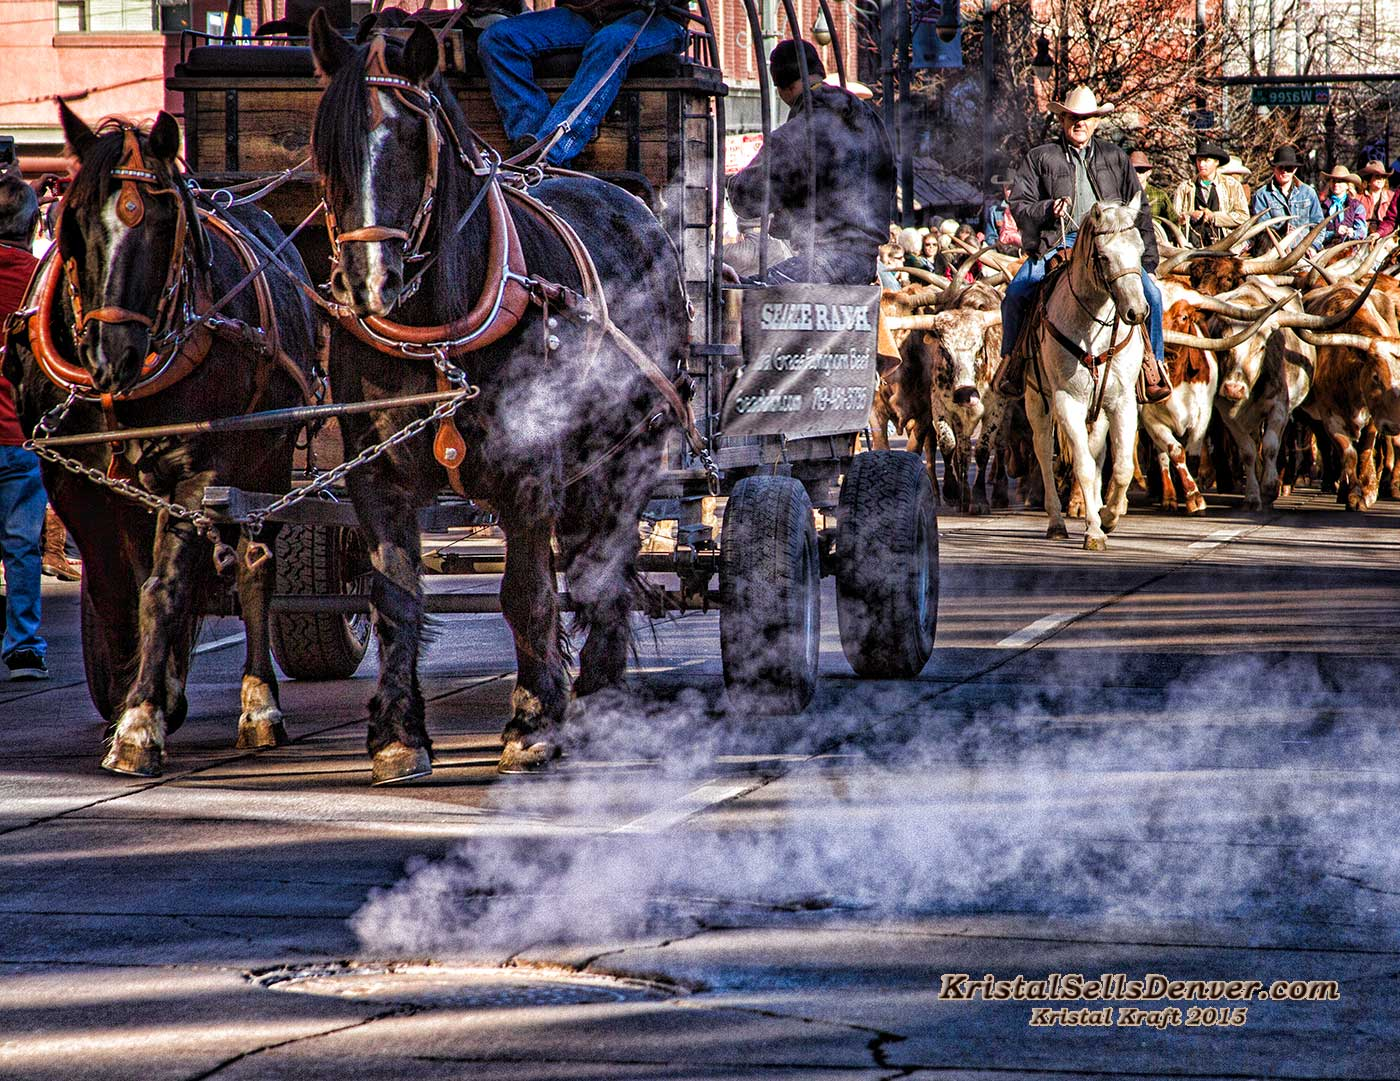 Horses and steers parade in downtown Denver,